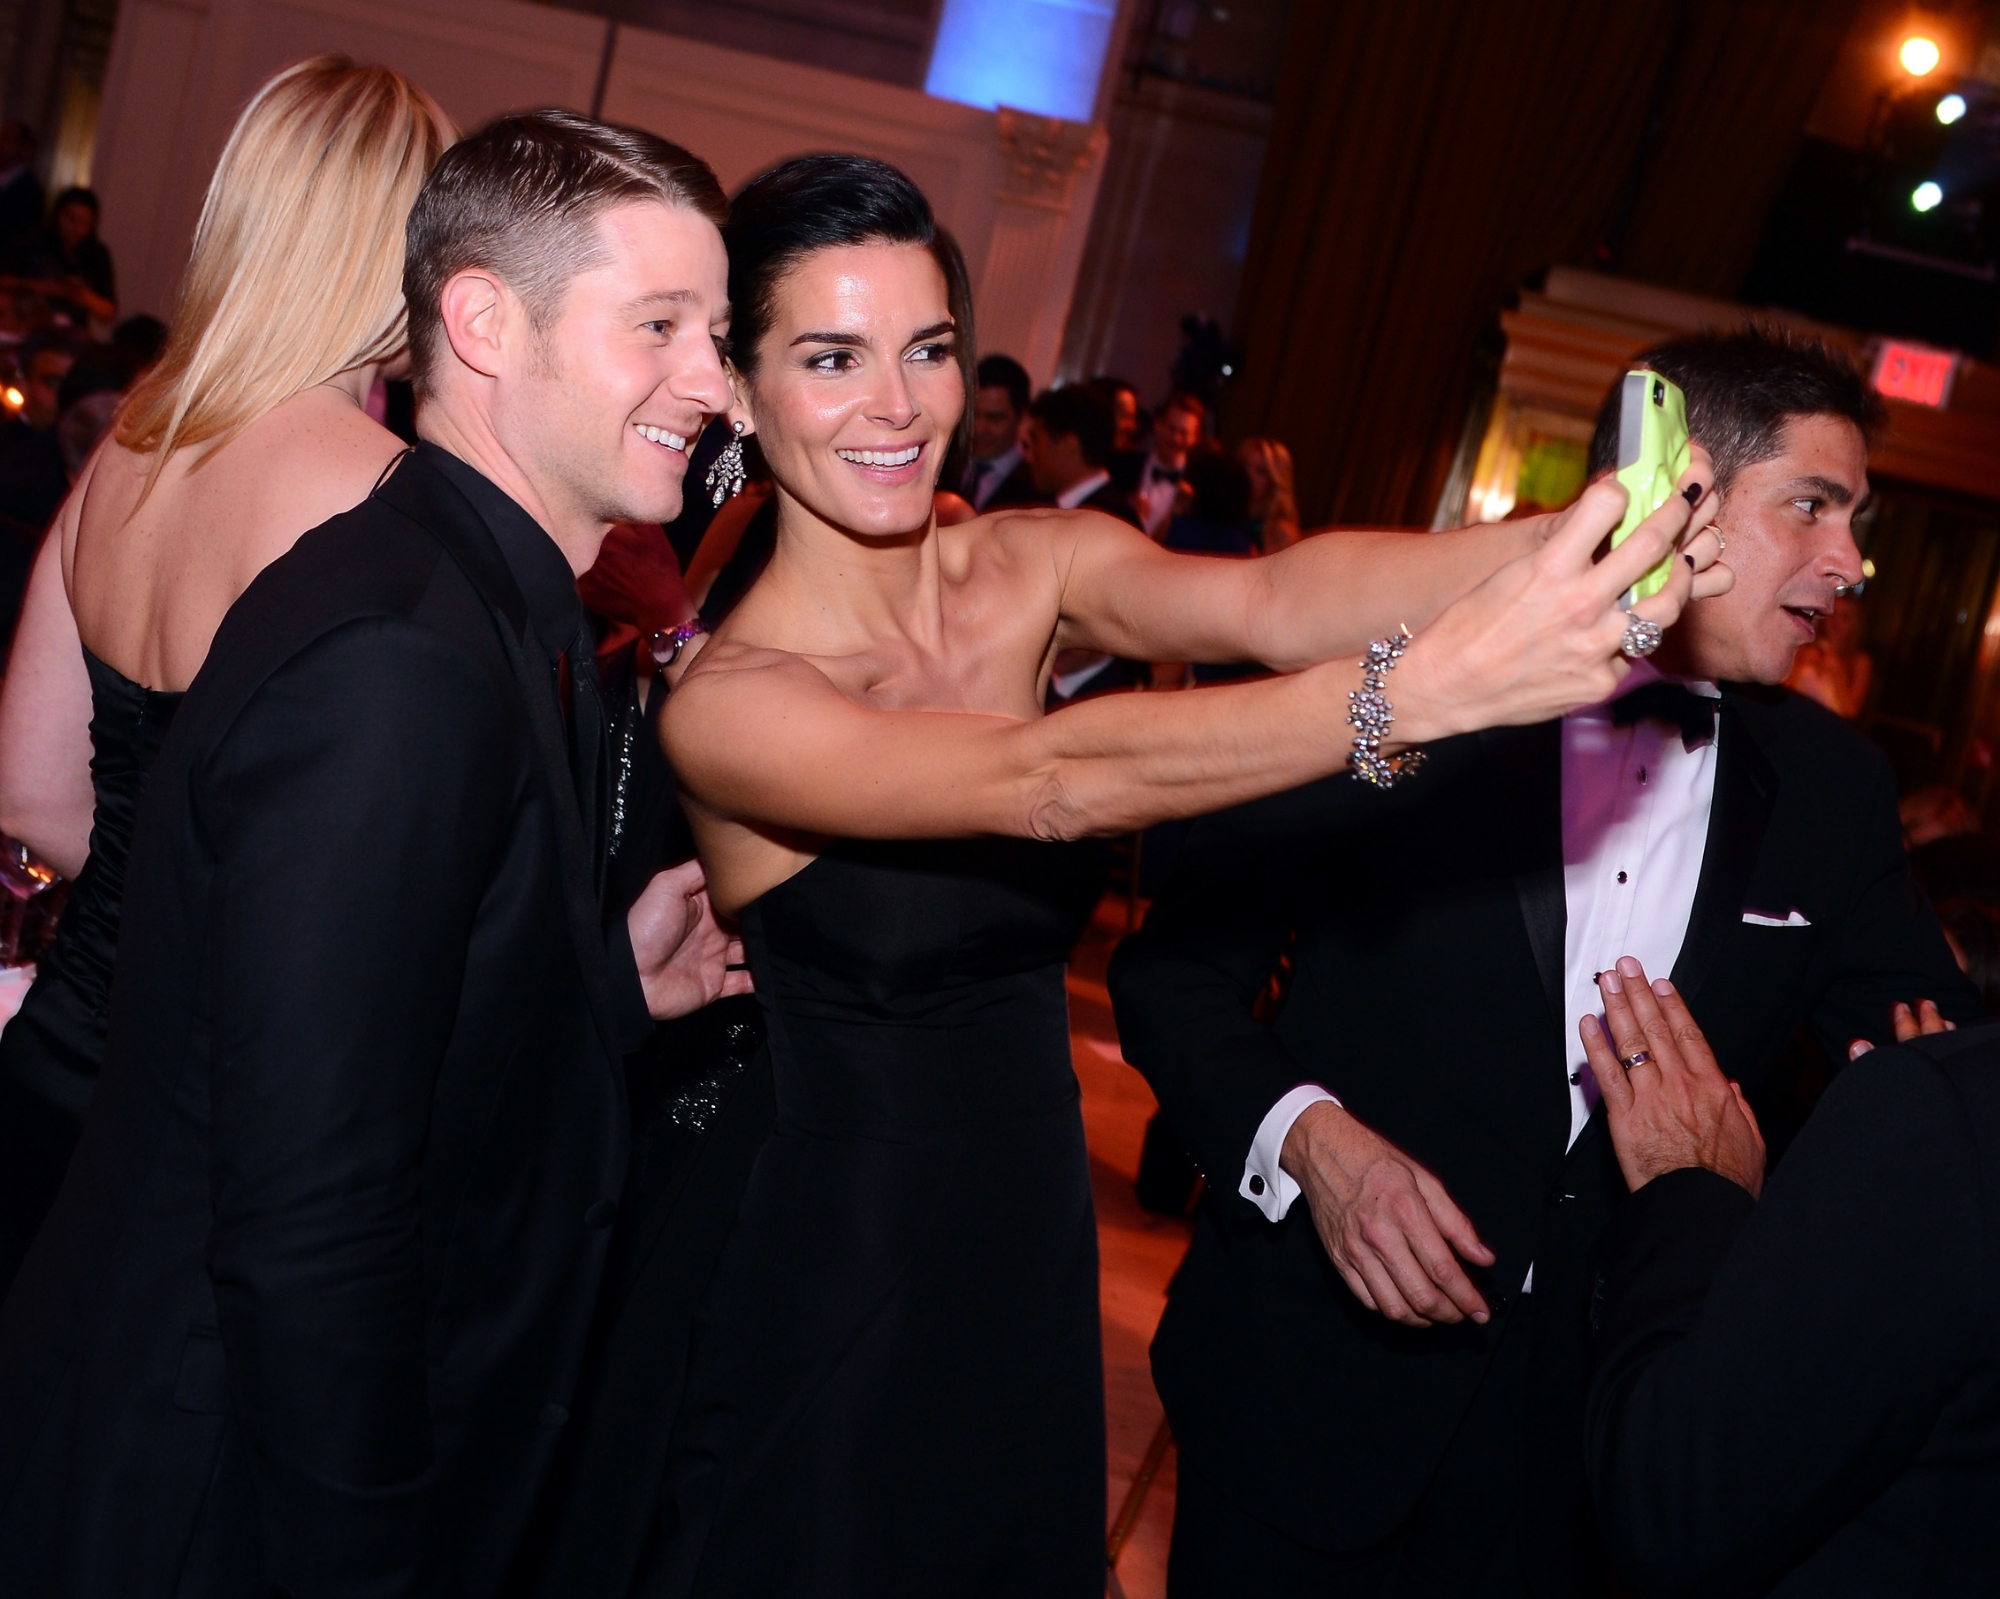 Ben McKenzie and Angie Harmon © 2014 Stephen Lovekin/Getty Images for UNICEF